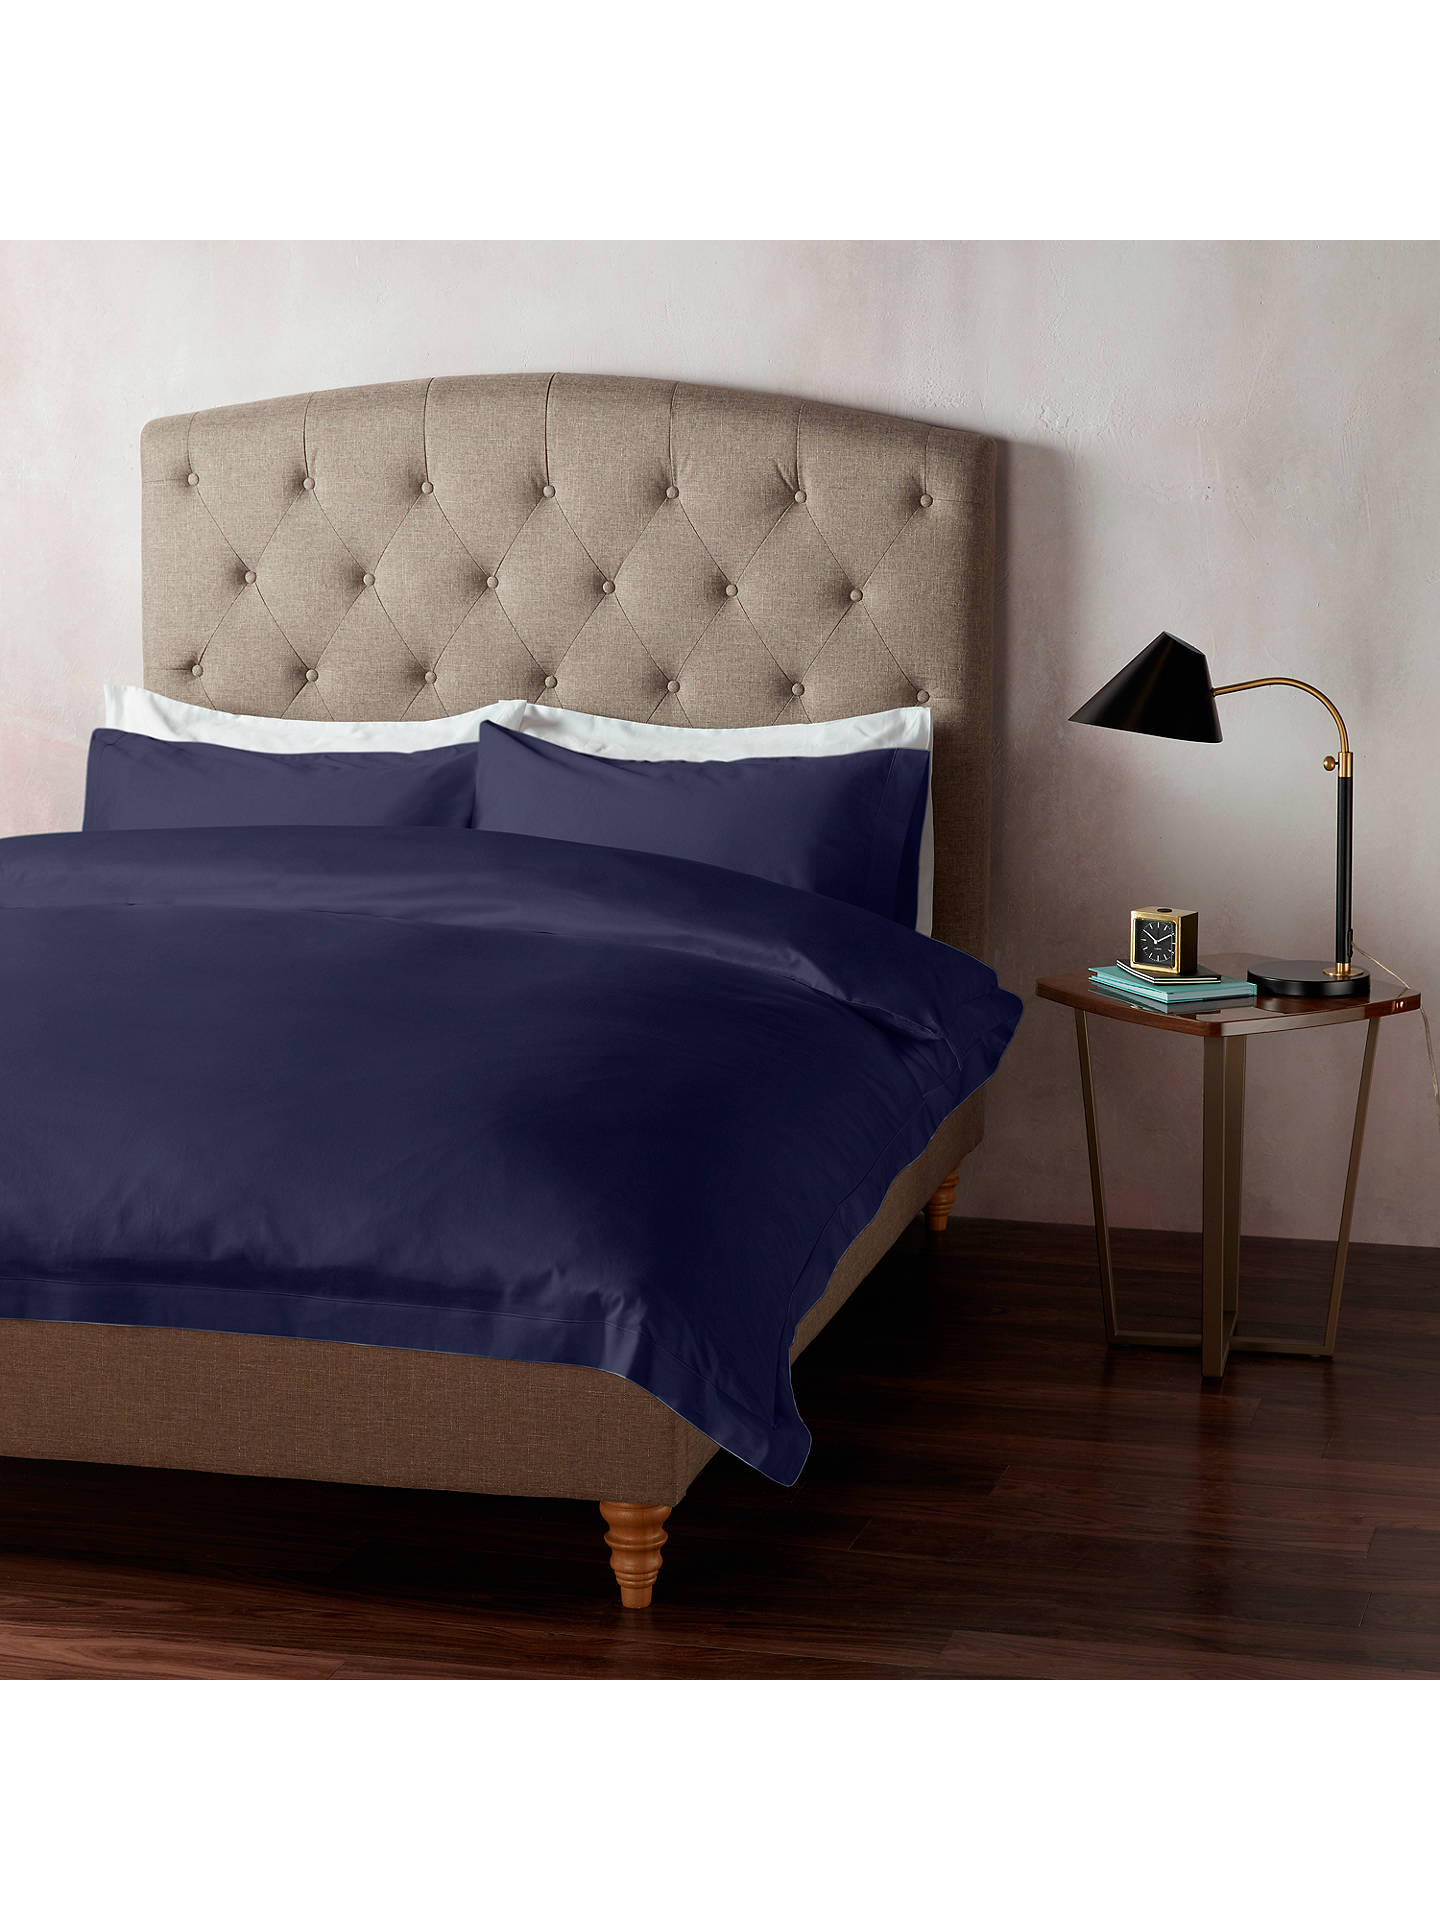 Buy John Lewis & Partners 400 Thread Count Soft & Silky Egyptian Cotton Standard Pillowcase, Midnight Blue Online at johnlewis.com